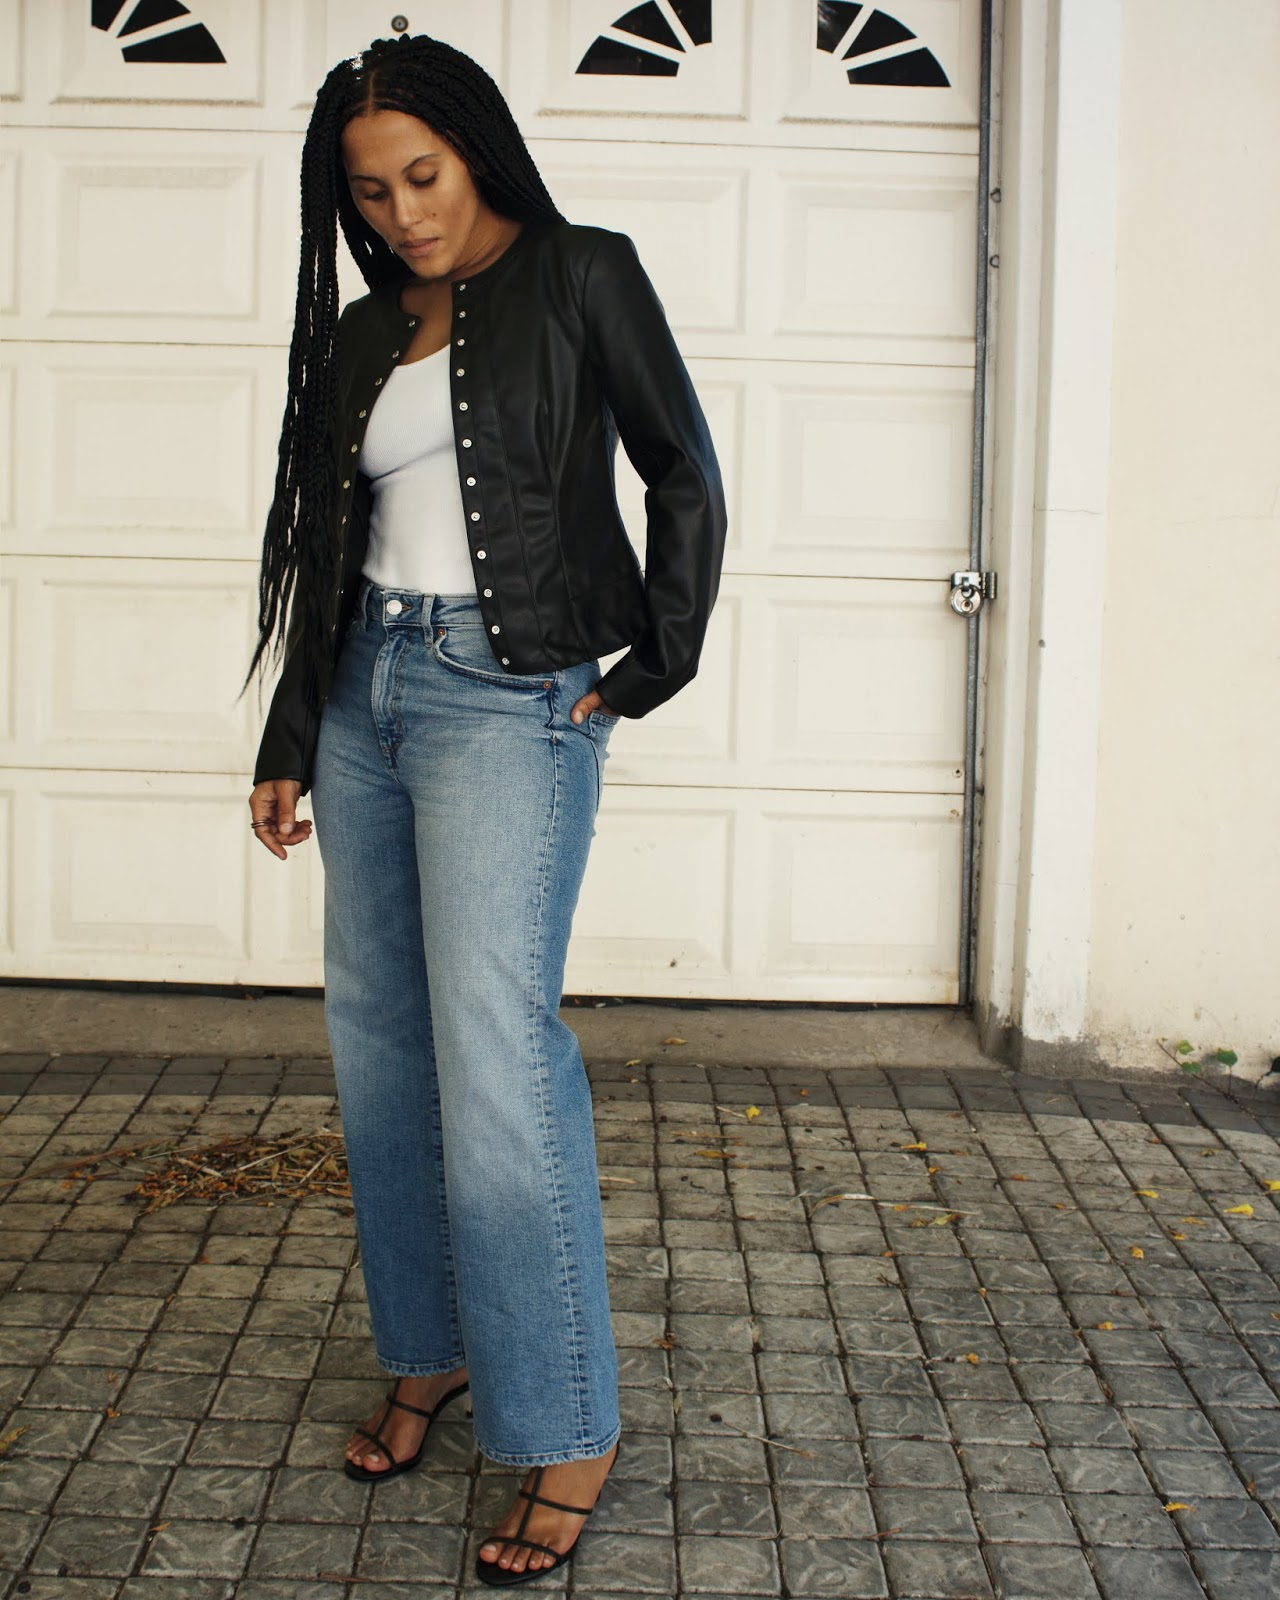 Liezel-Esquire-must-have-it-jeans-of-2019